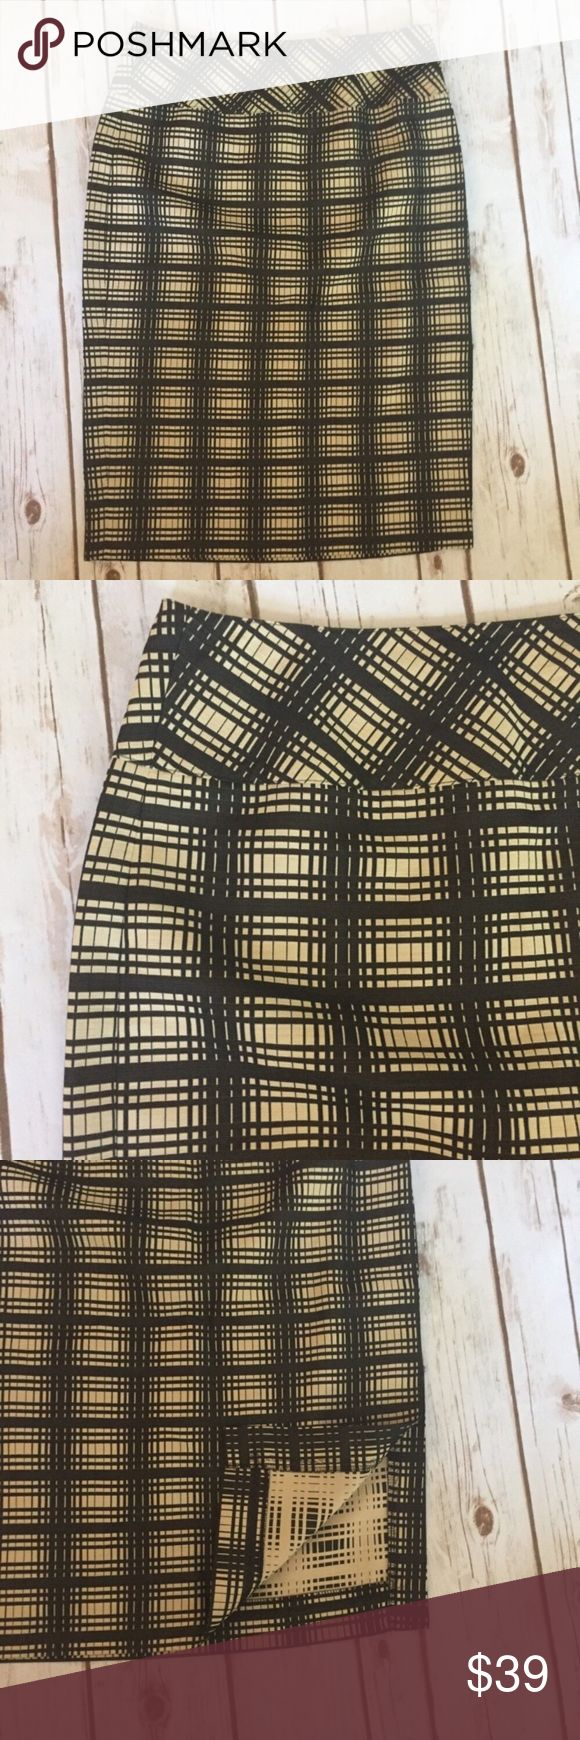 NEW J Crew Career Black Cream Checker Pencil Skirt NEW J. Crew Urban Career Black Cream Checker Straight Pencil Skirt Sz 4 Excellent condition. No flaws  Cotton/viscose Side zip  Left side slit  Measurements in inches when laid flat:  Waist: 14 Hips: 18 Length: 24   /203/ J. Crew Skirts Pencil